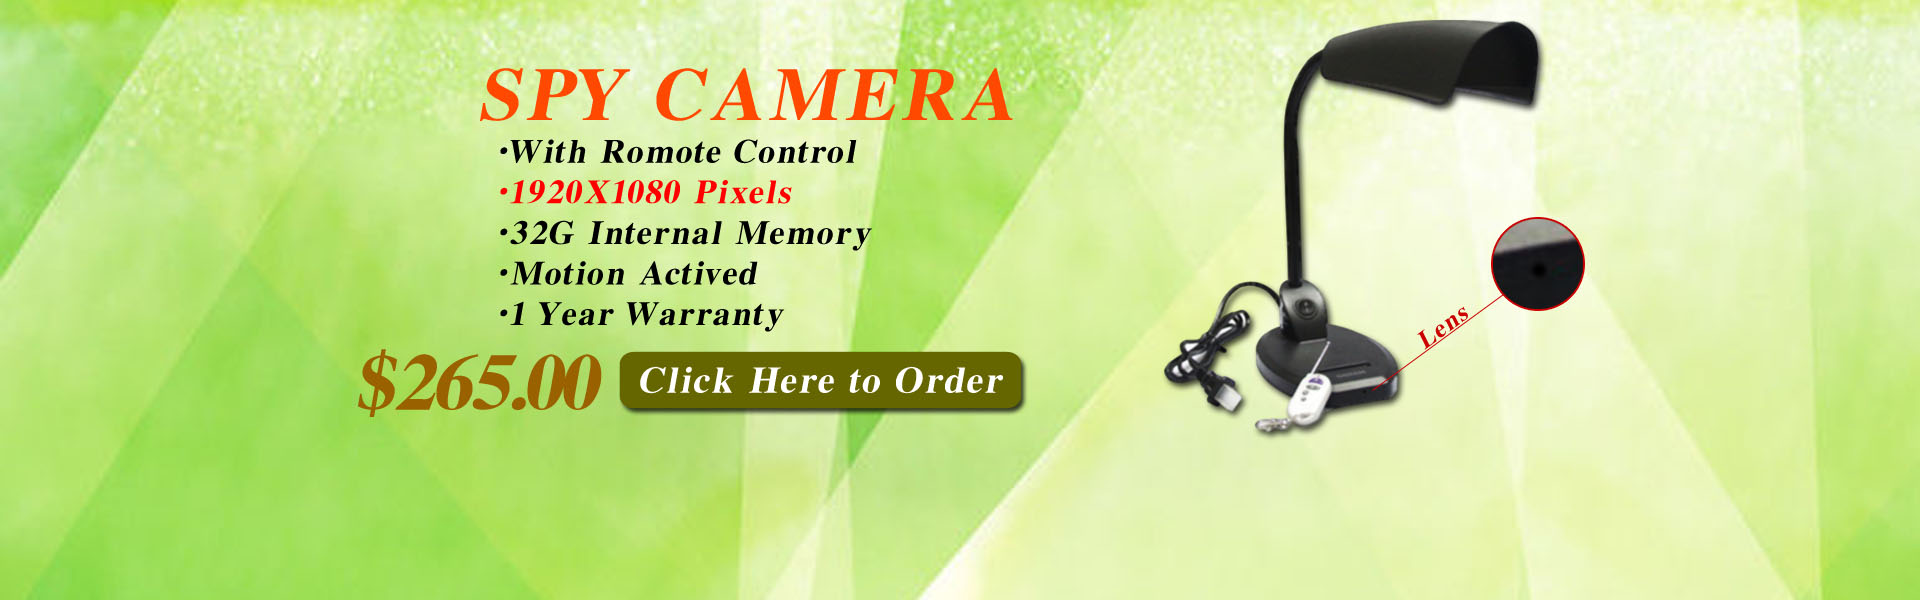 Light Spy Camera 1080P HD Spy DVR Pinhole Spy Camera 32GB Internal Memory